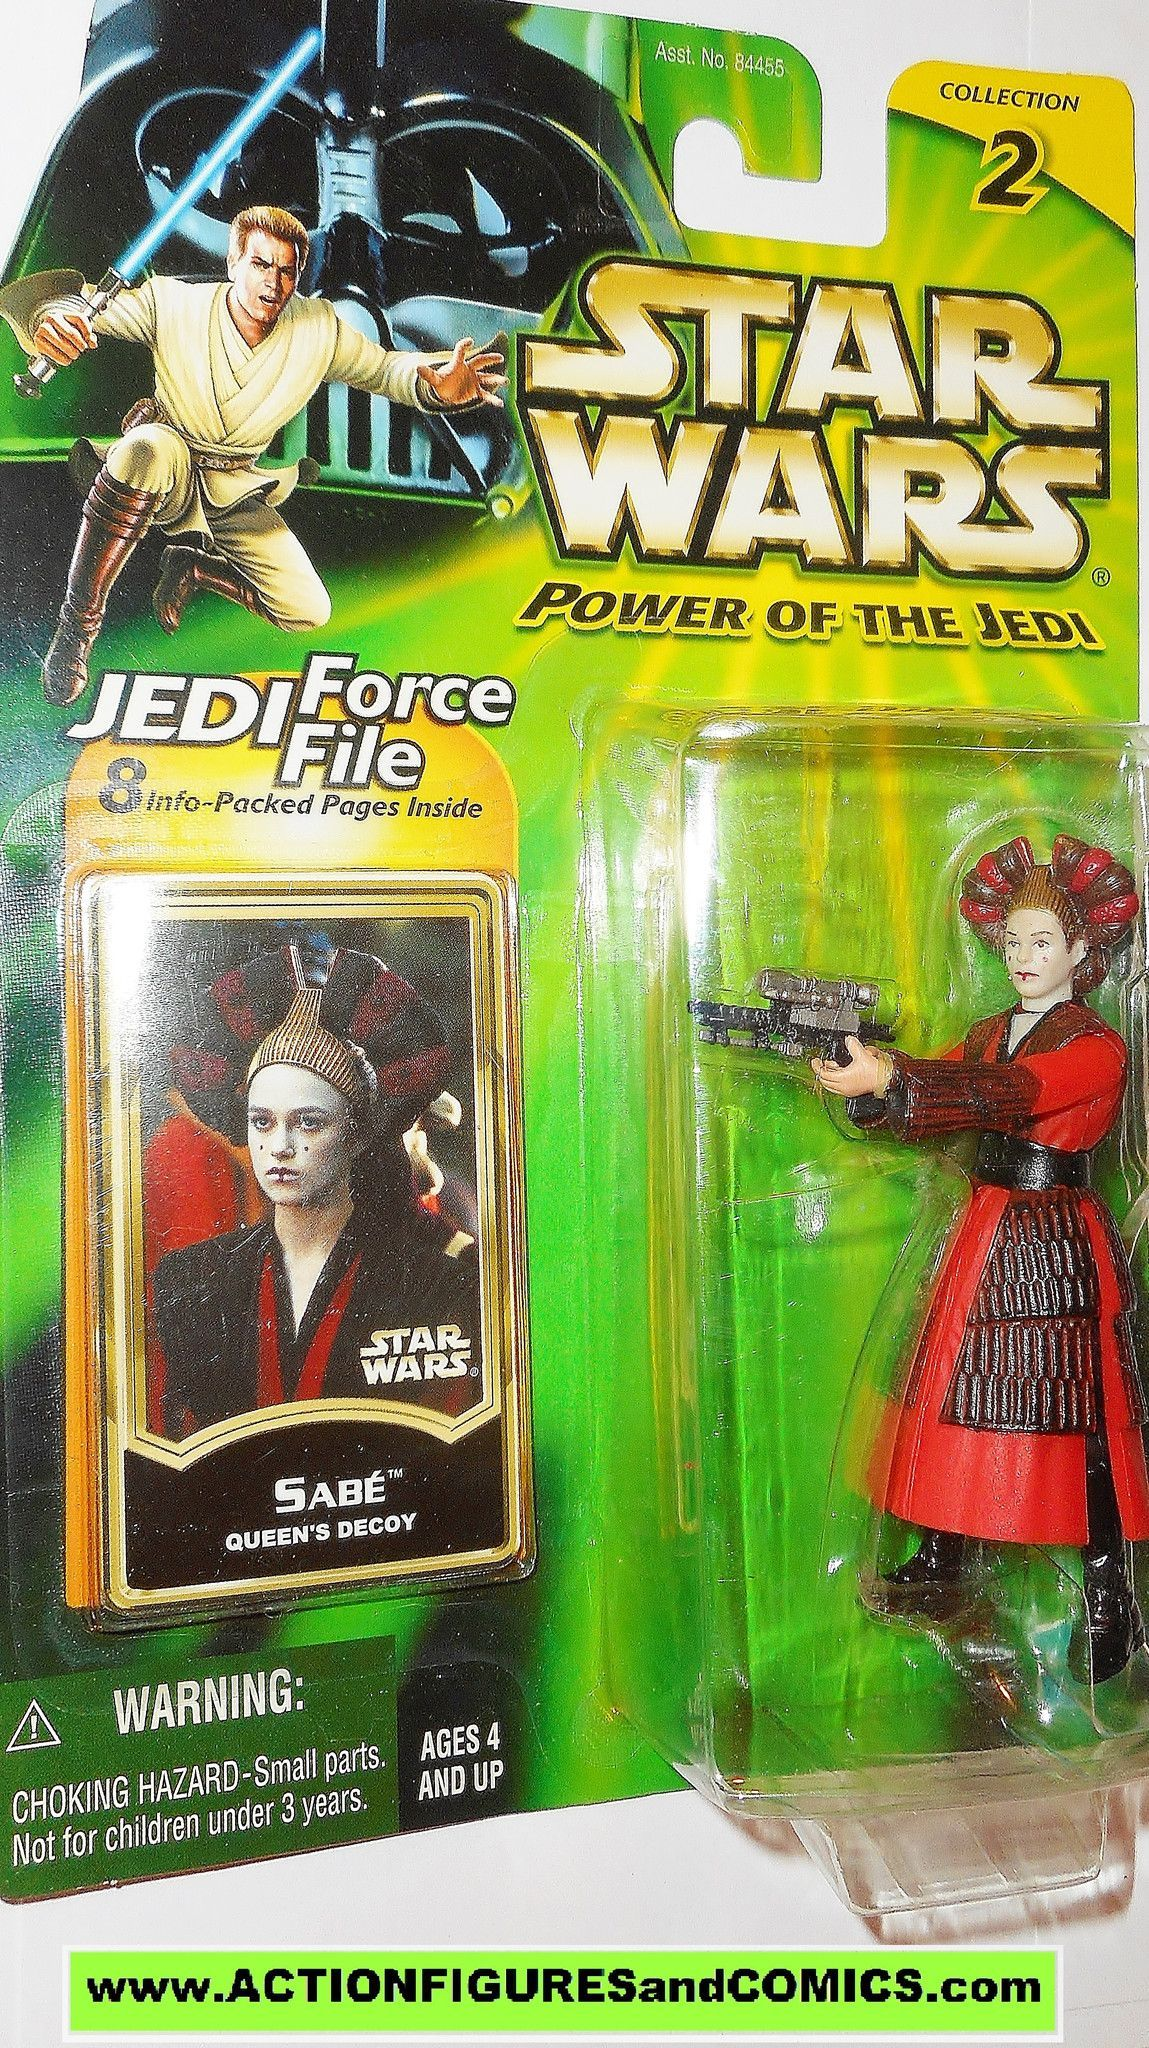 Brand New! Hasbro Star Wars Power of the Jedi Sabe Queen/'s Decoy action figure